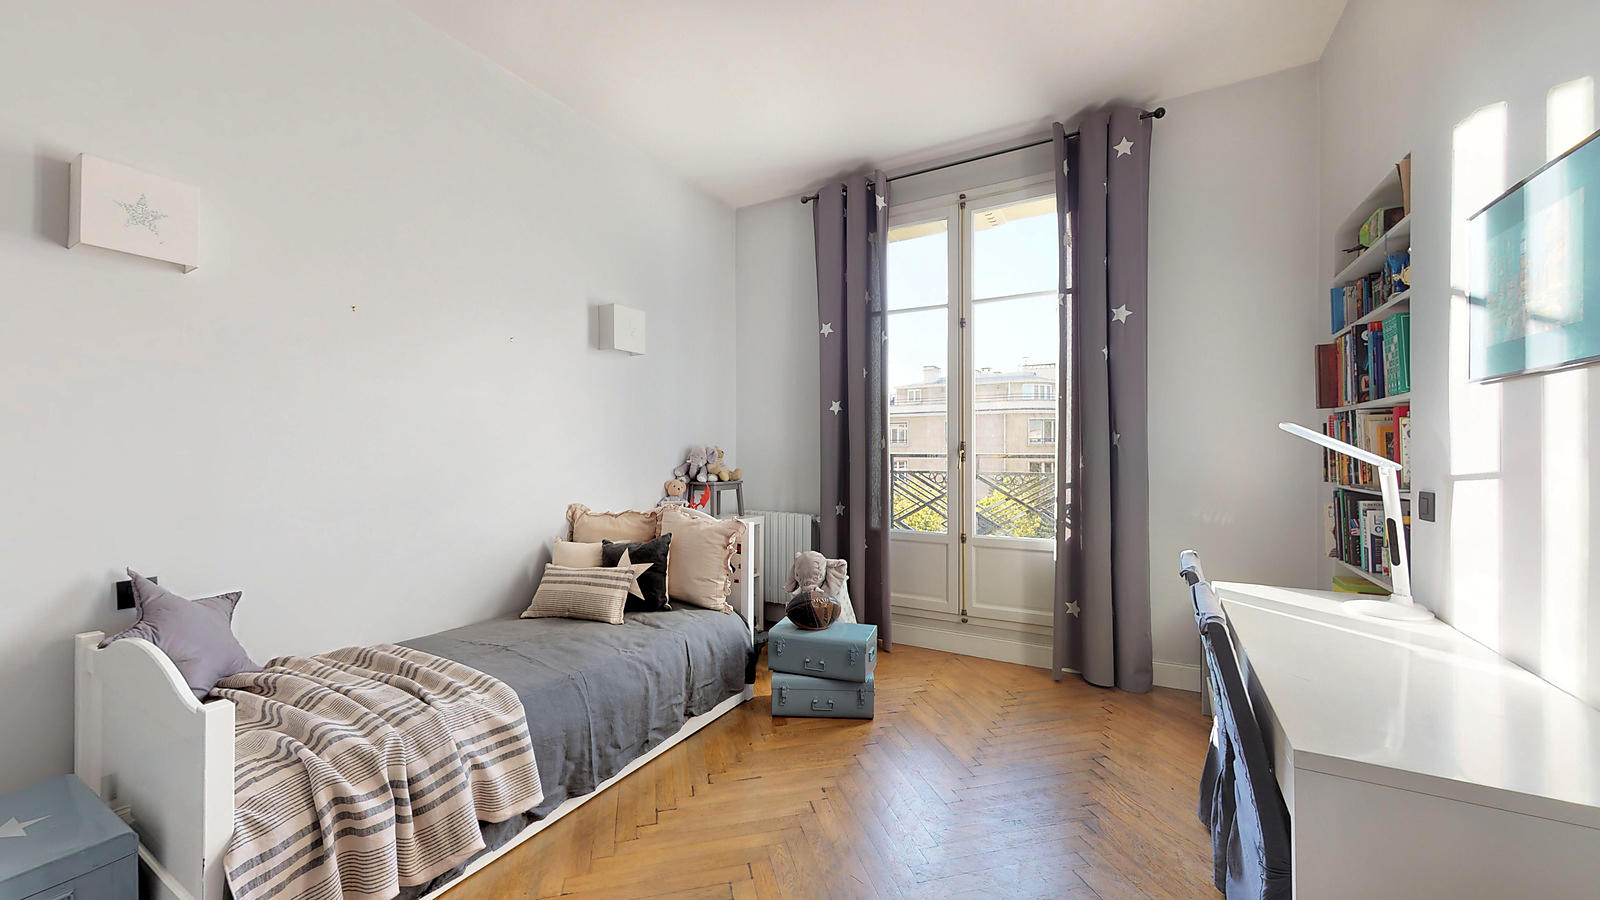 Appartement-Paris16-NF-10042019_143819_copie